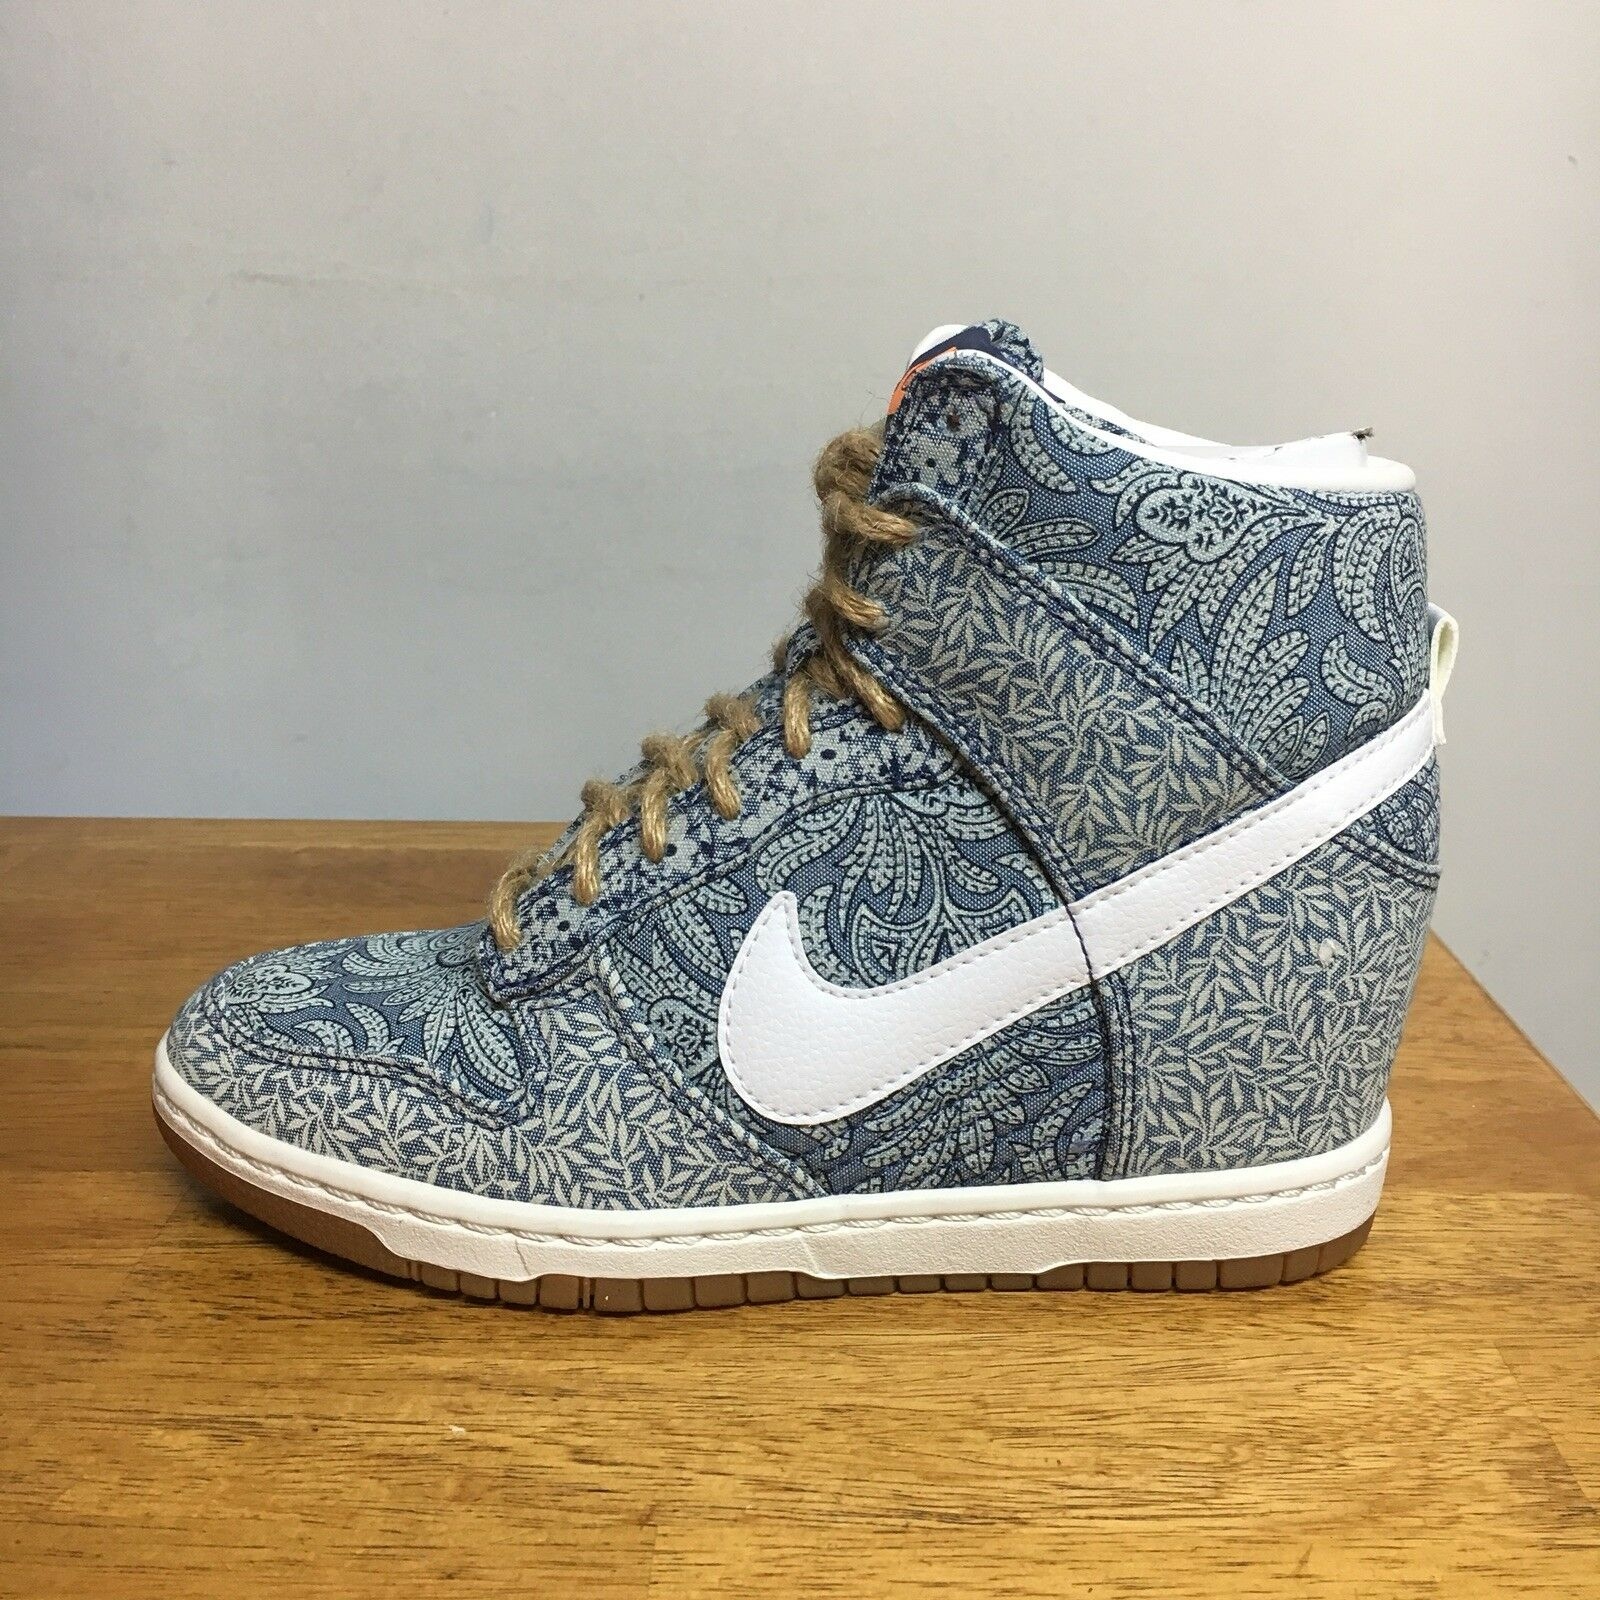 Nike Women's Dunk Sky Hi LIB LONDON blueE RECALL LINEN 529040-401 sz 5